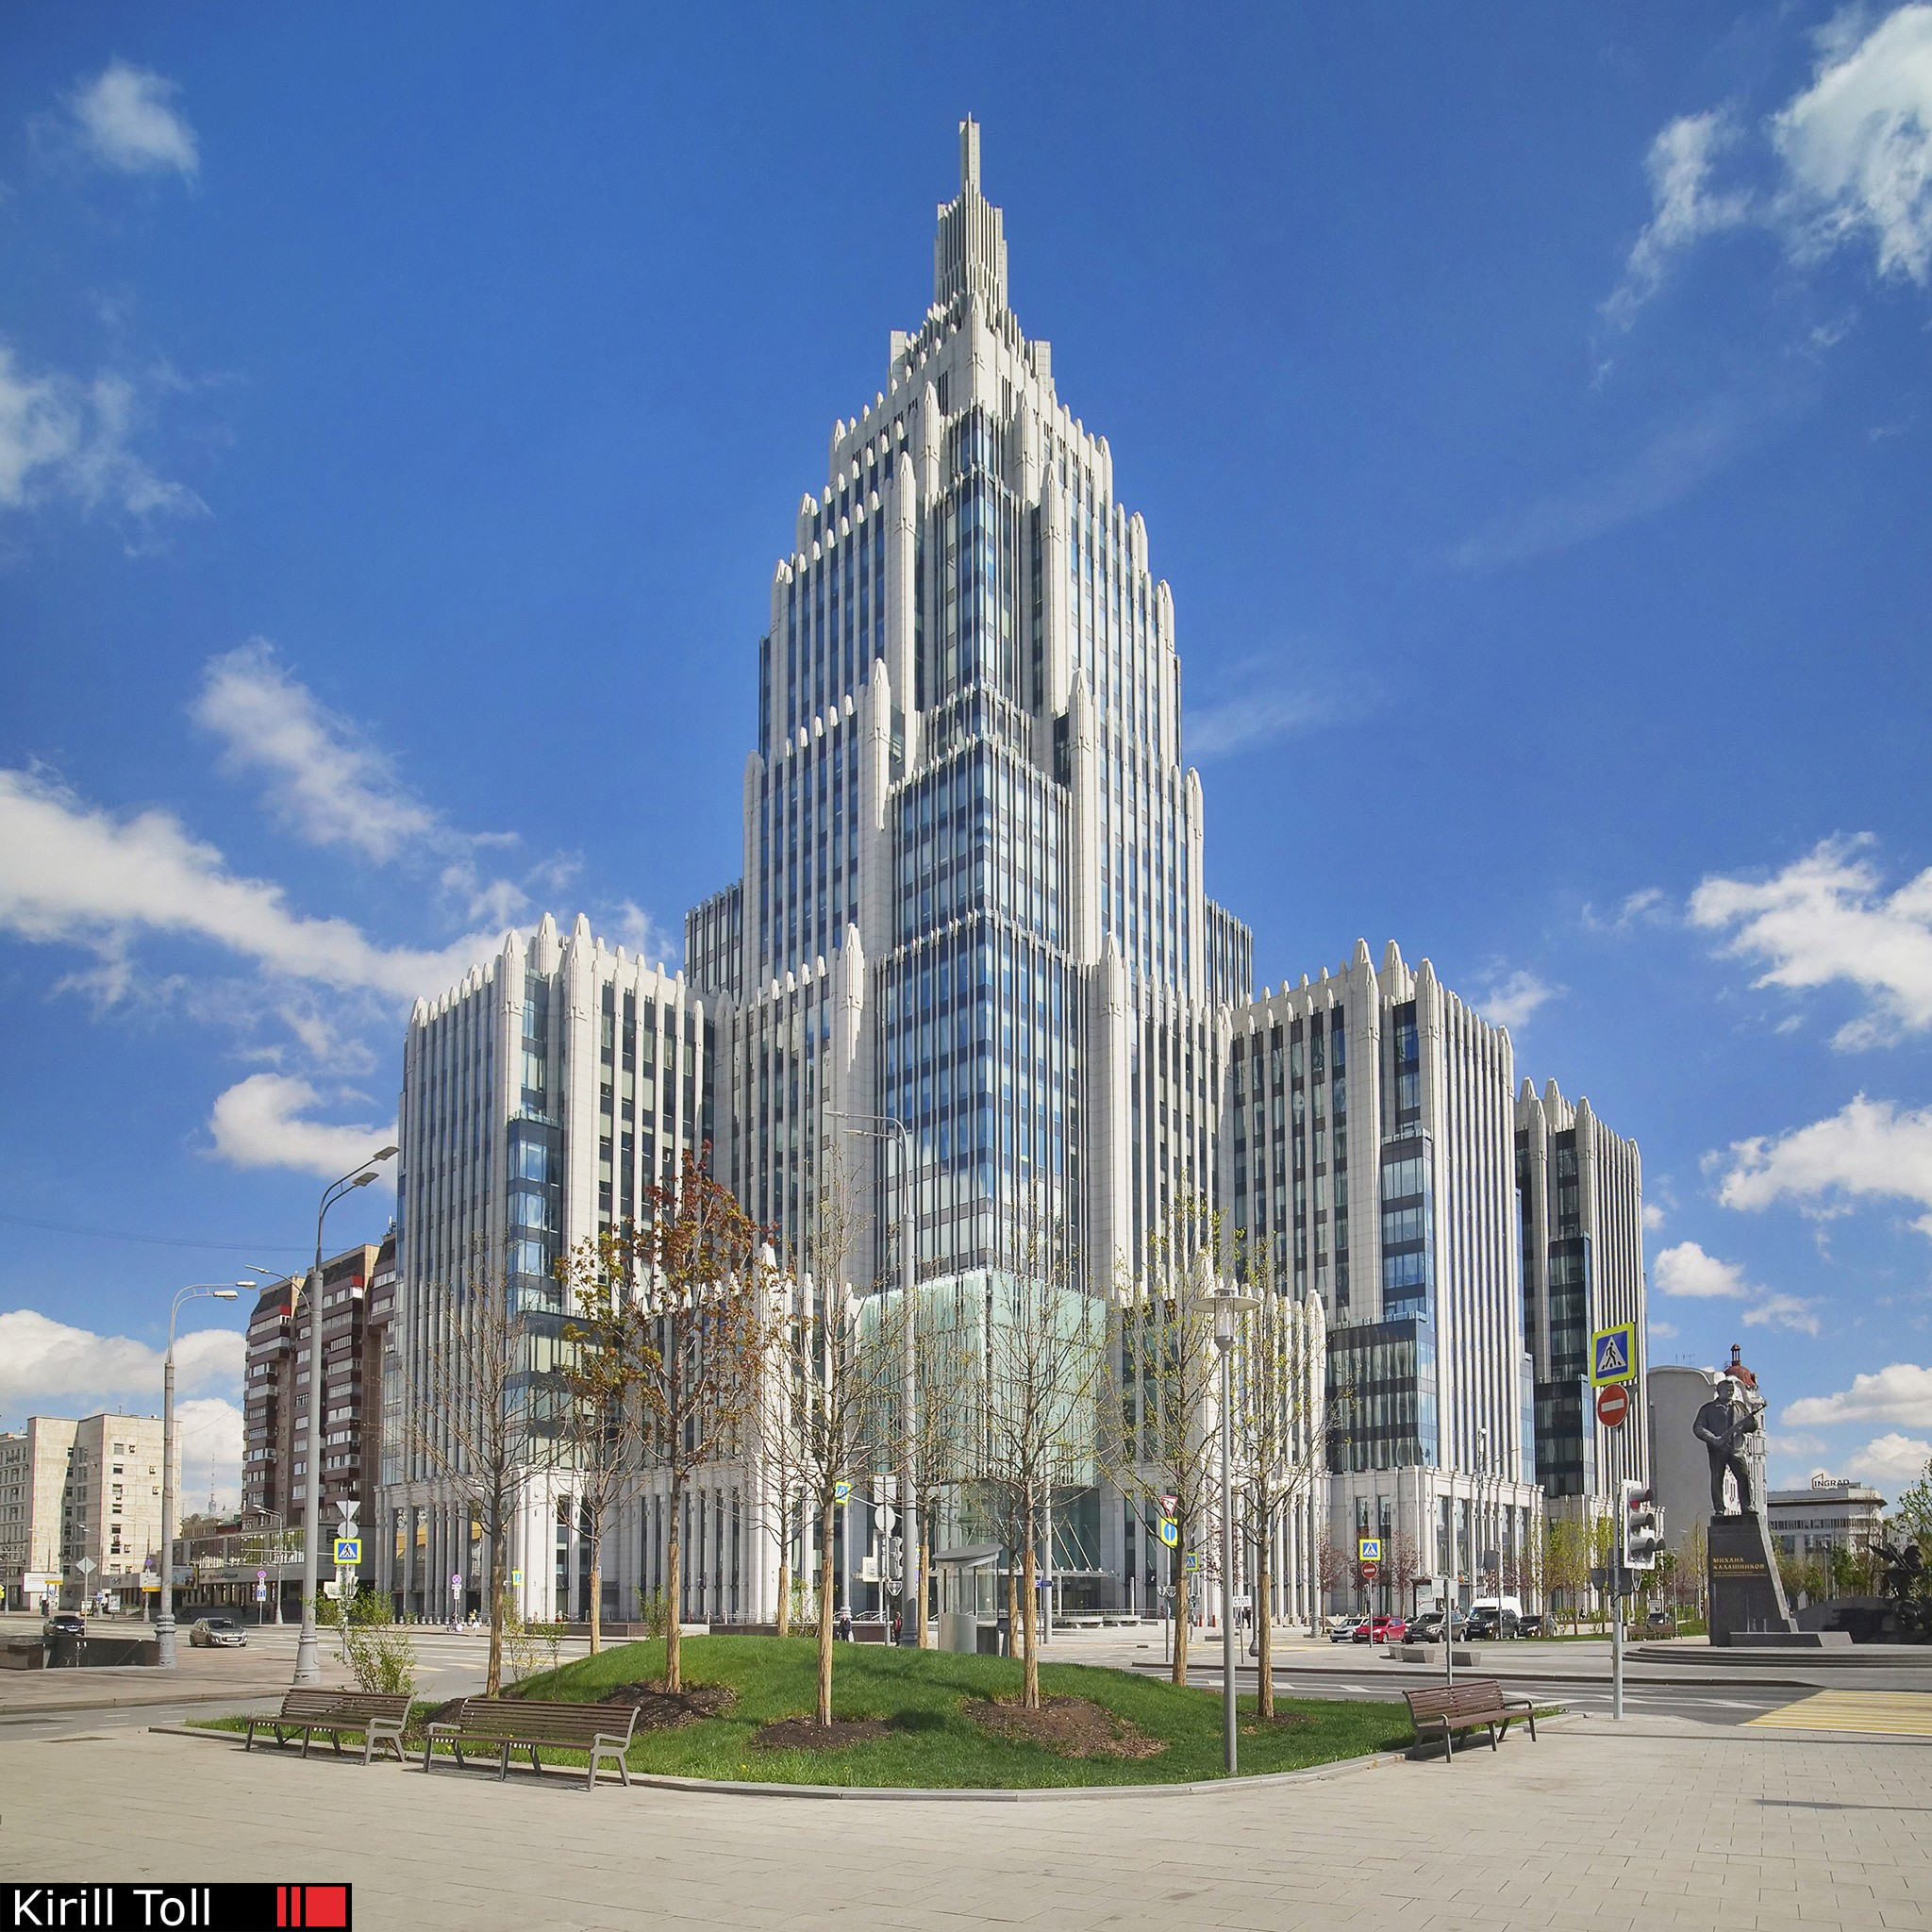 Business Center Orujeinii-Oruzheynyy Pereulok 41 Moscow